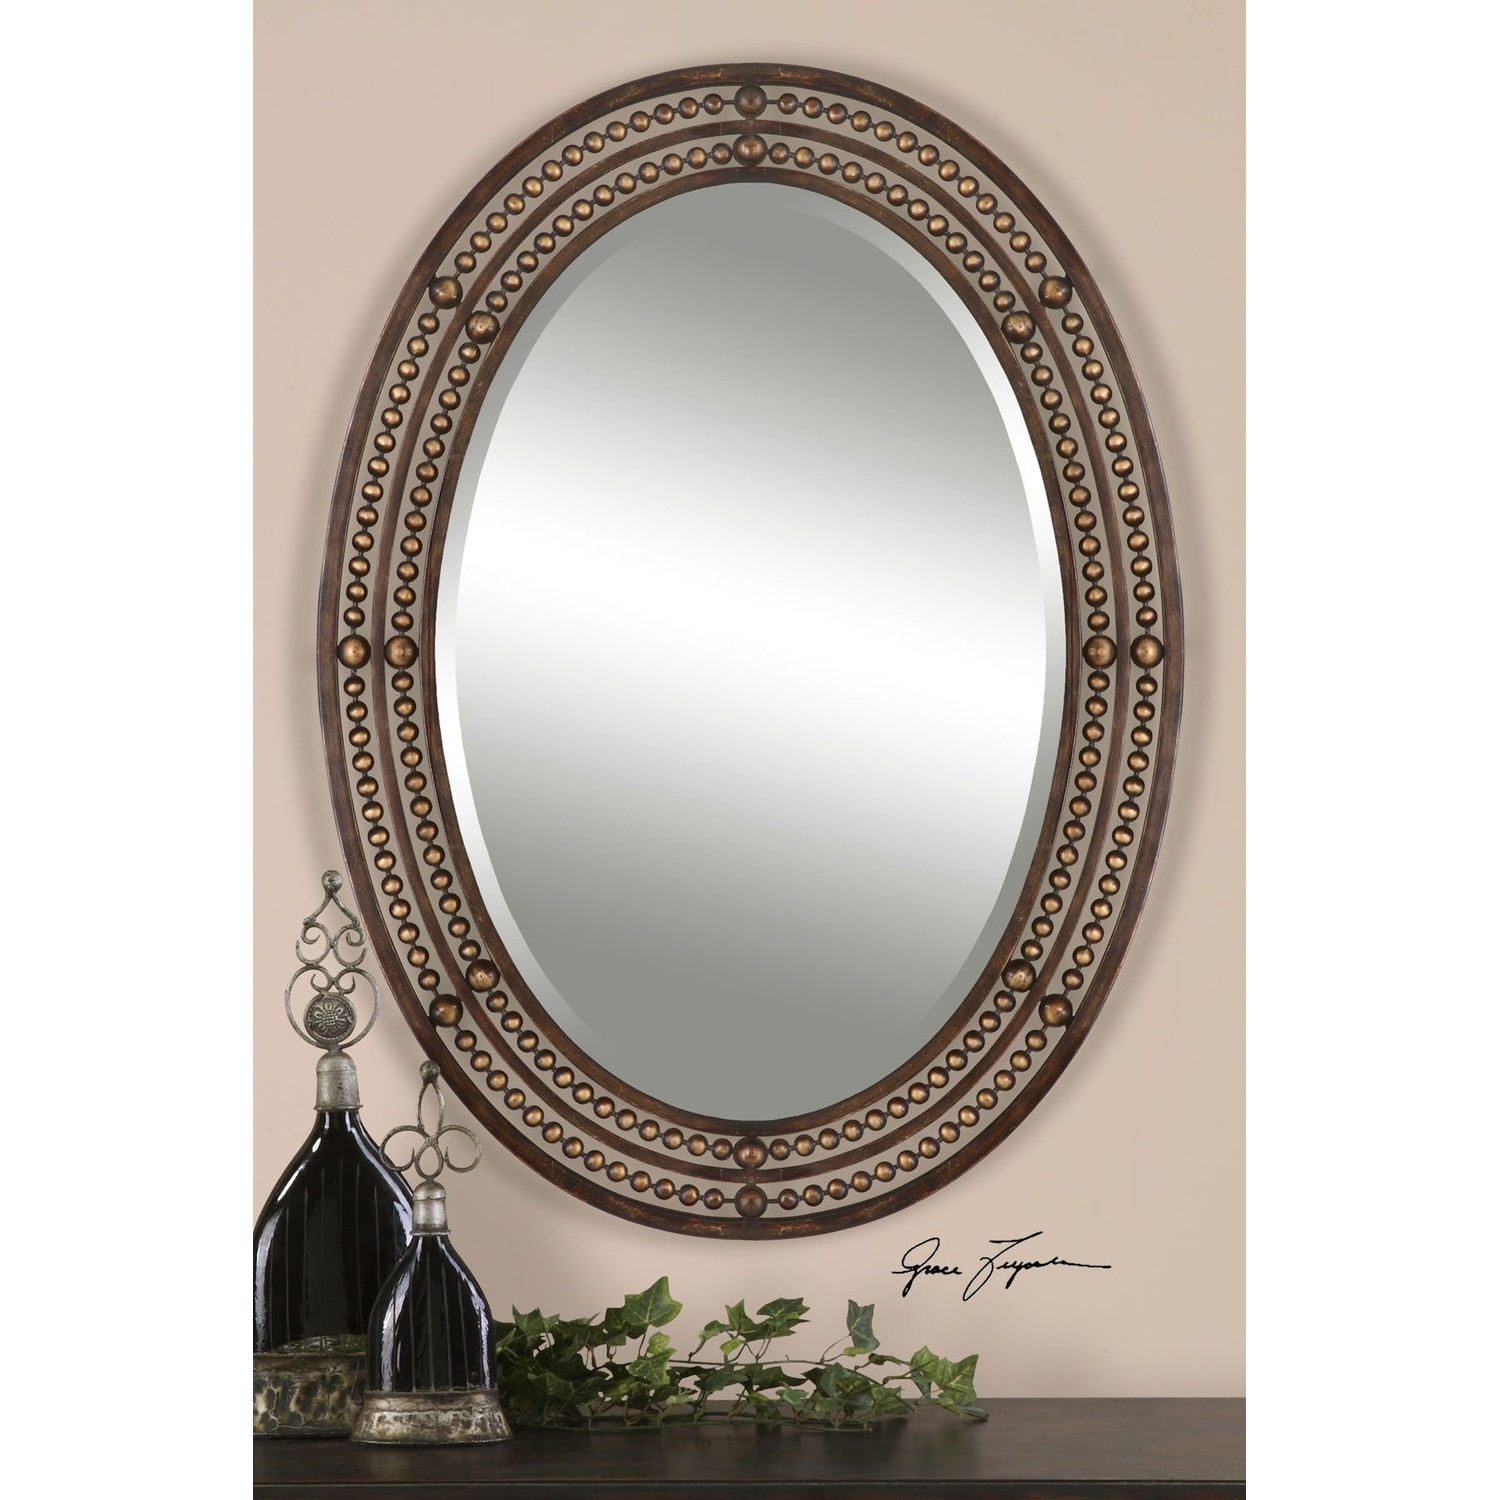 Bathroom Mirrors Oval With Frame Home In Oval Mirrors For Walls (Image 1 of 15)